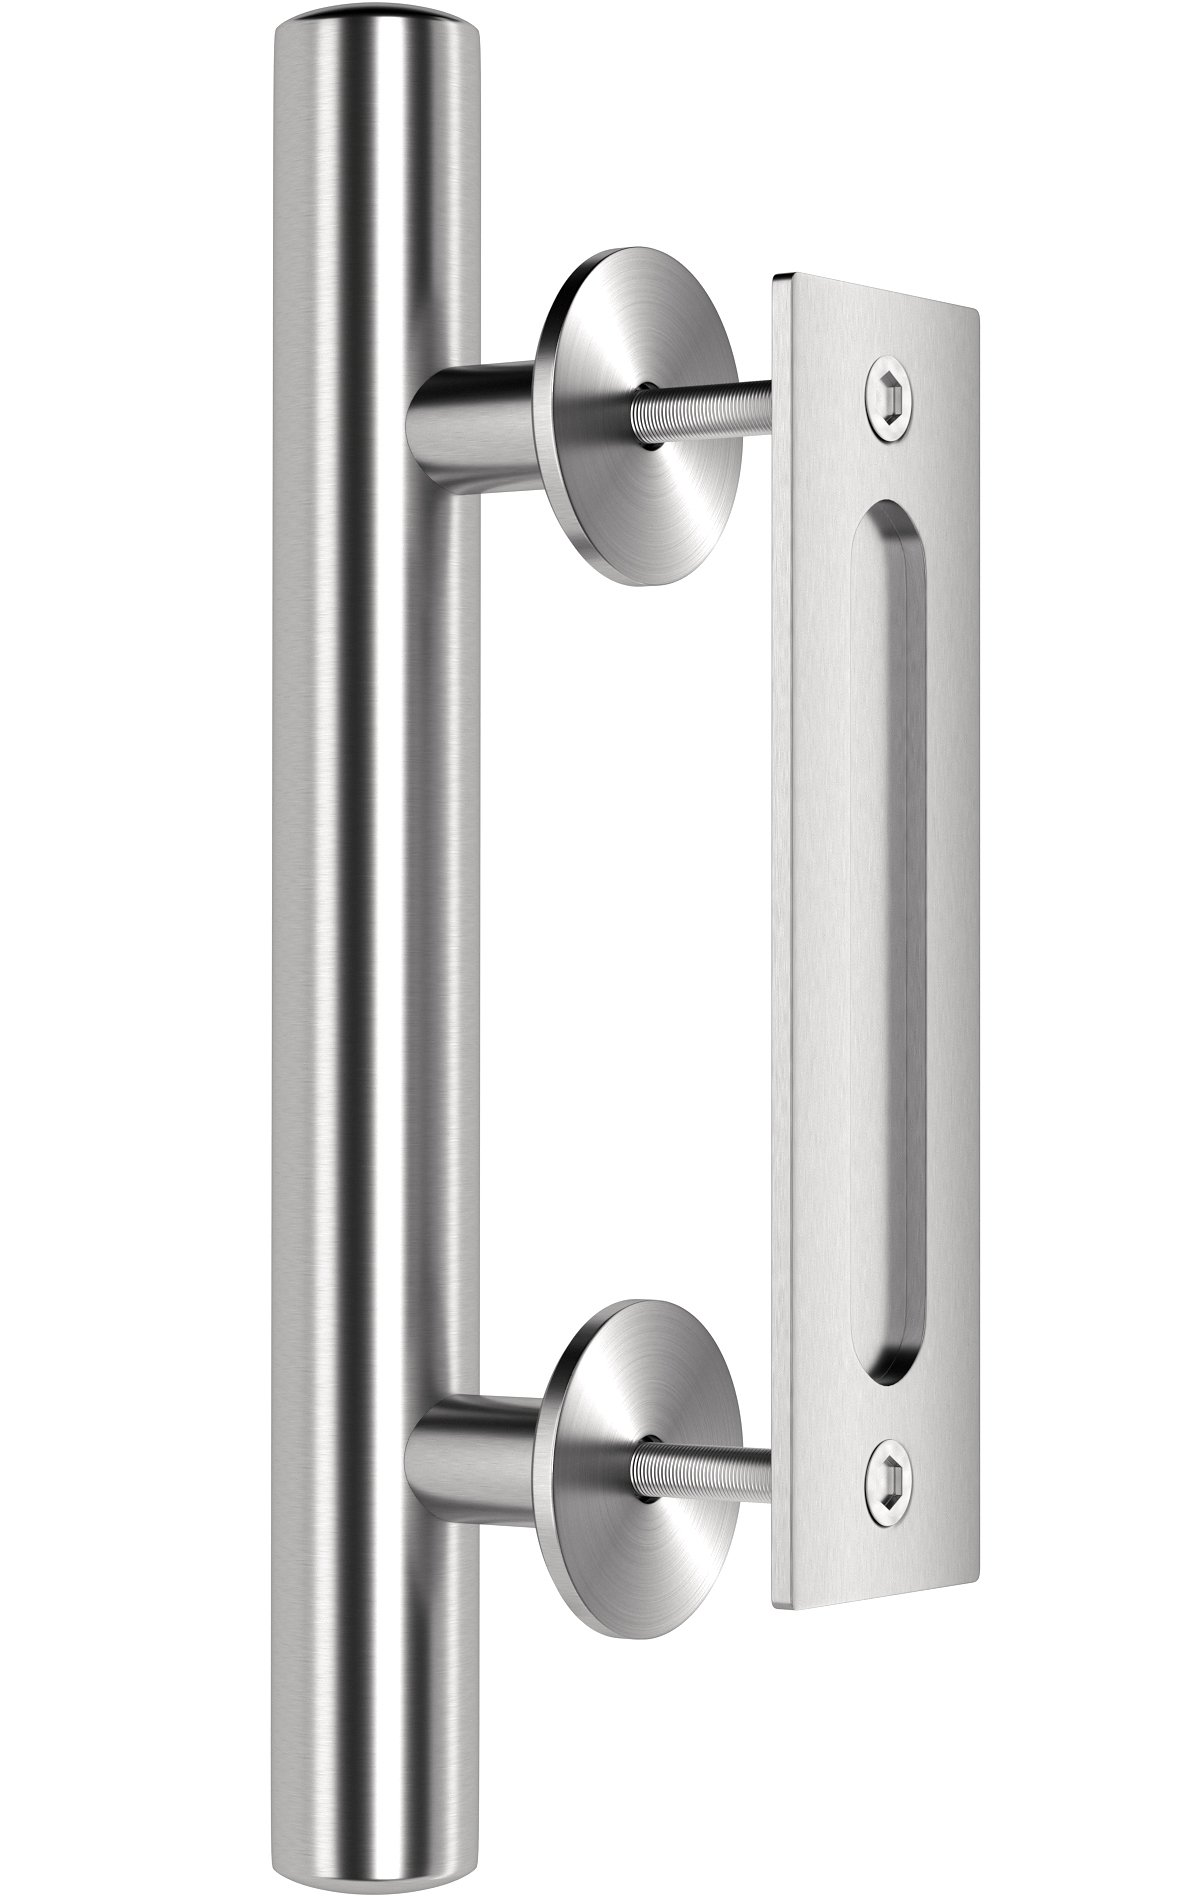 Premium Stainless Steel Modern Barn Door Handle 12'' Pull and Flush Set by Dreamline Products - for Interior Sliding Doors